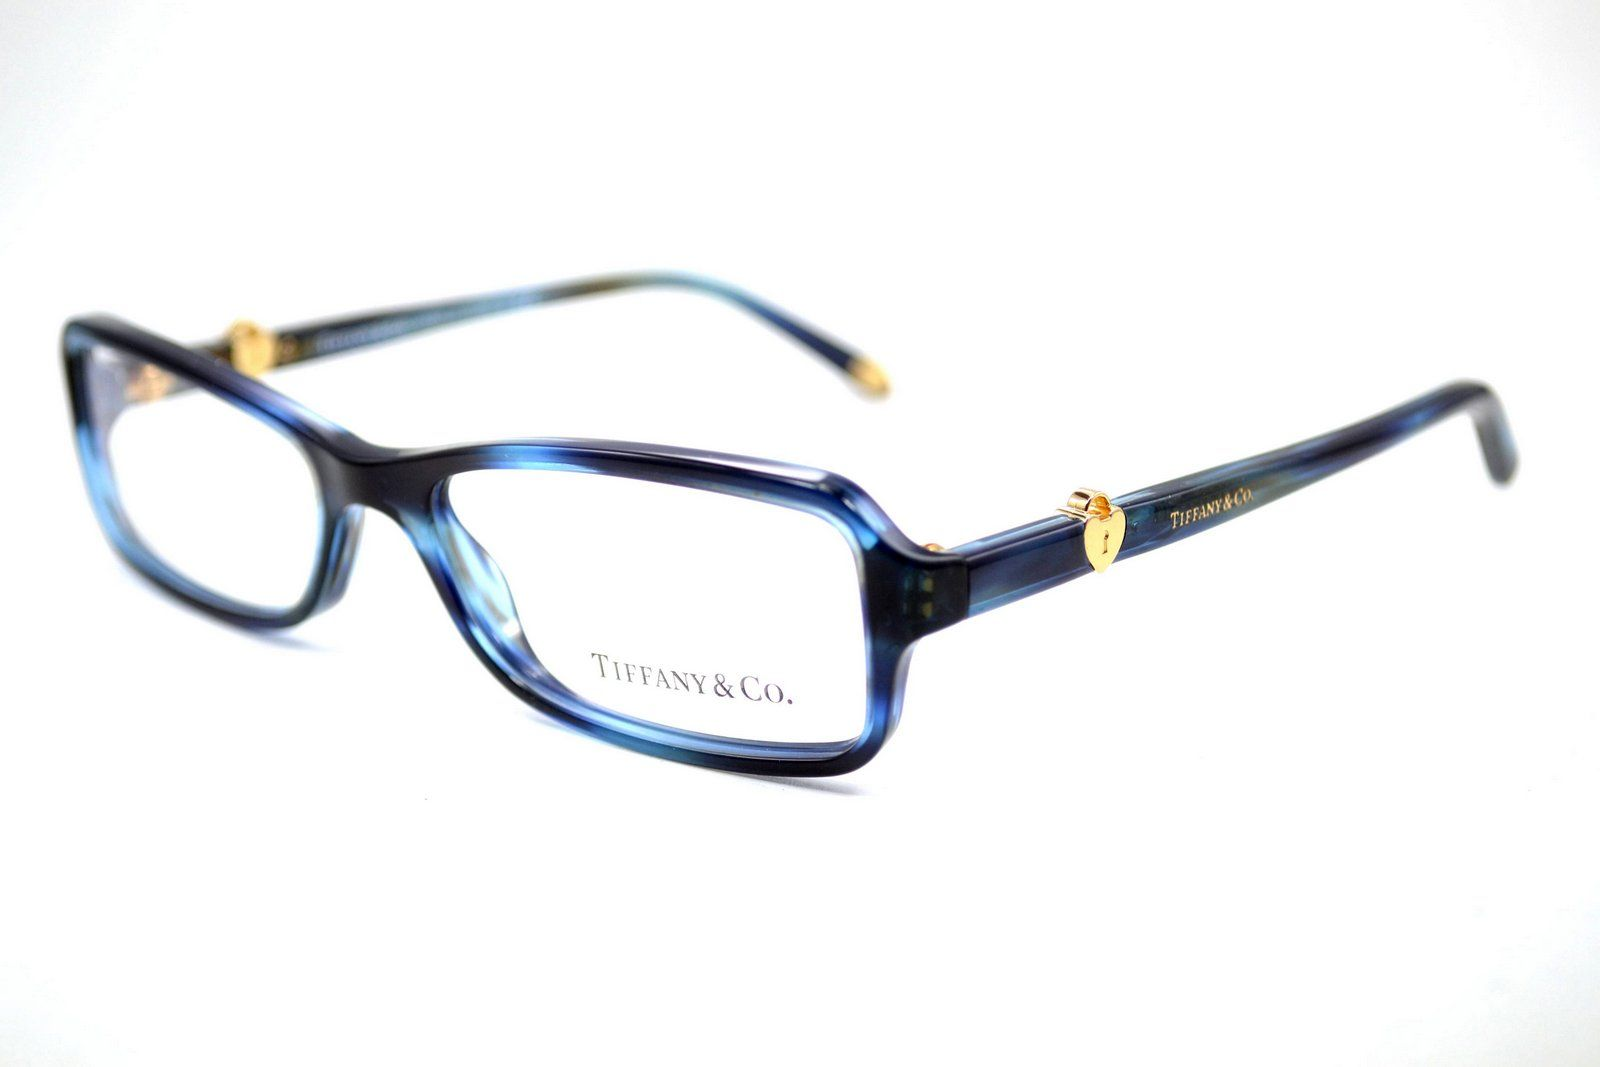 TIFFANY Eyeglasses TF 2061 8113 Ocean Blue 54MM | Tiffany, Ocean and ...